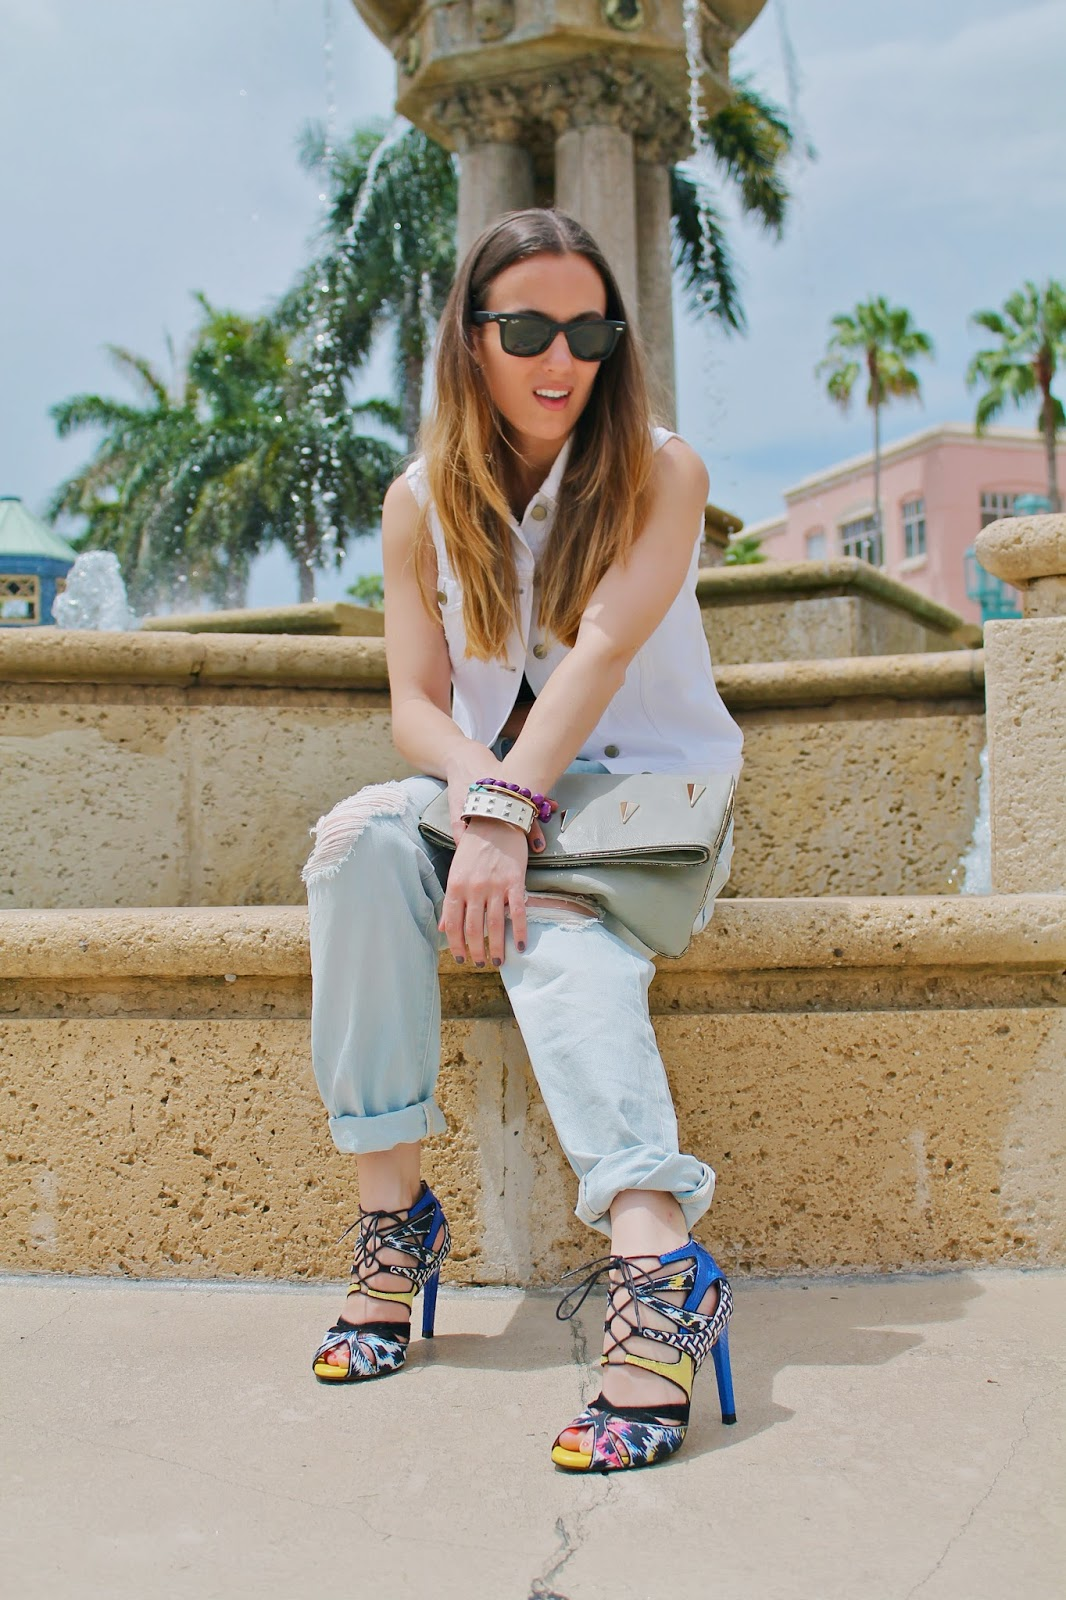 Gap, LF Stores, Zara, BCBGeneration, Nordstrom, Kate Spade, Ray-Ban, Miami fashion blogger, fashion blog, style blog, street style, classic, prep, distressed denim, denim vest, summer style